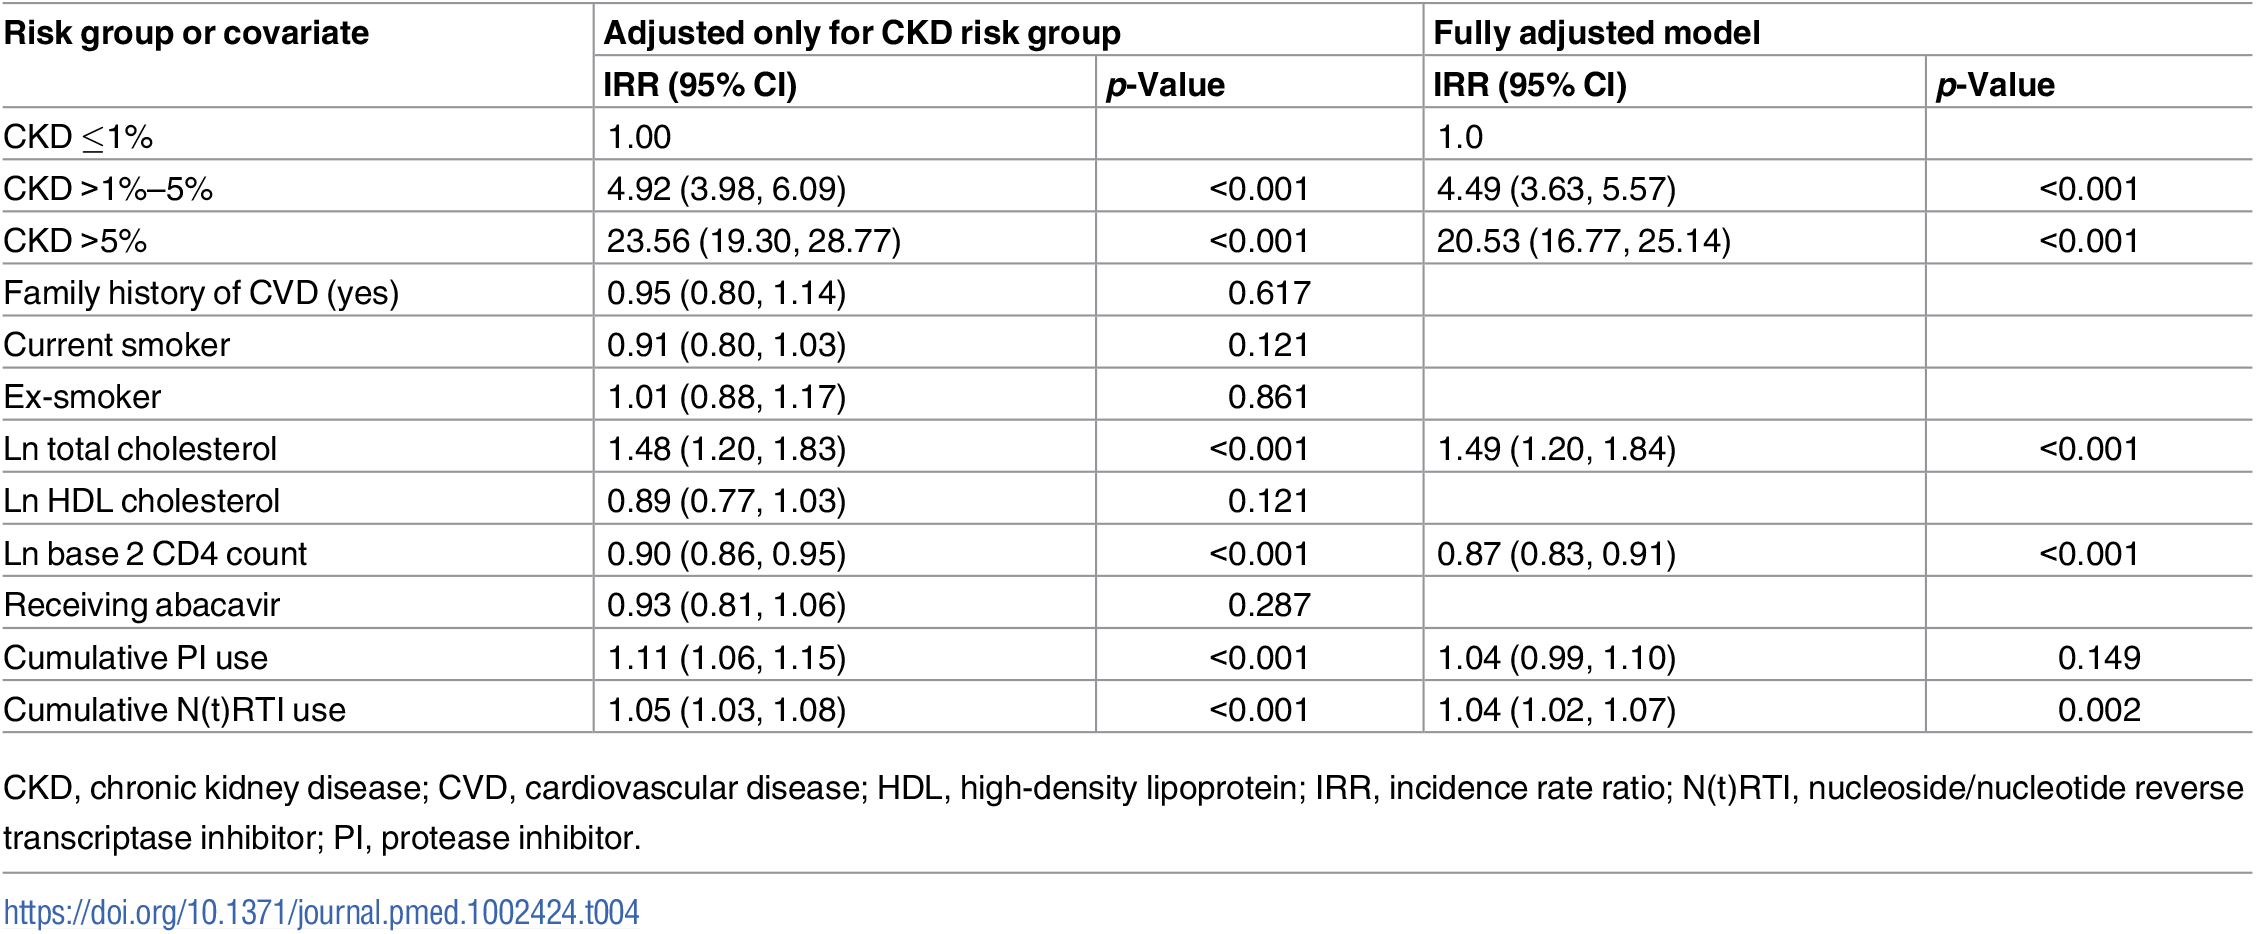 Covariates of CVD risk score as predictors for CKD events adjusted for CKD risk group.